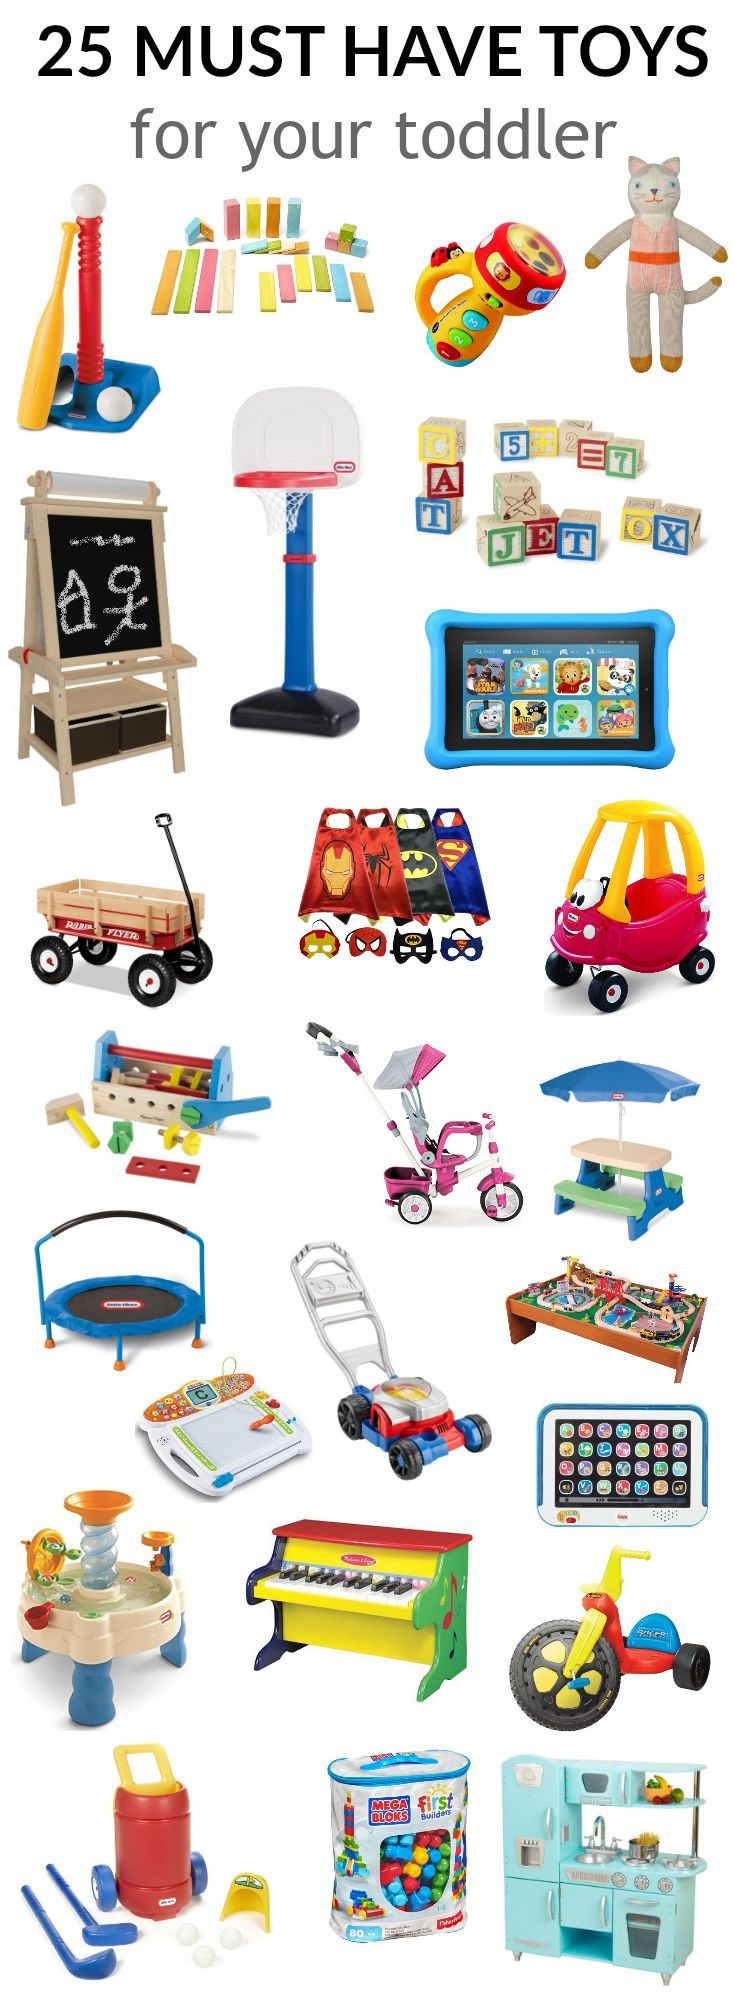 161 Best Images About Best Toys For 2 Year Old Girls On